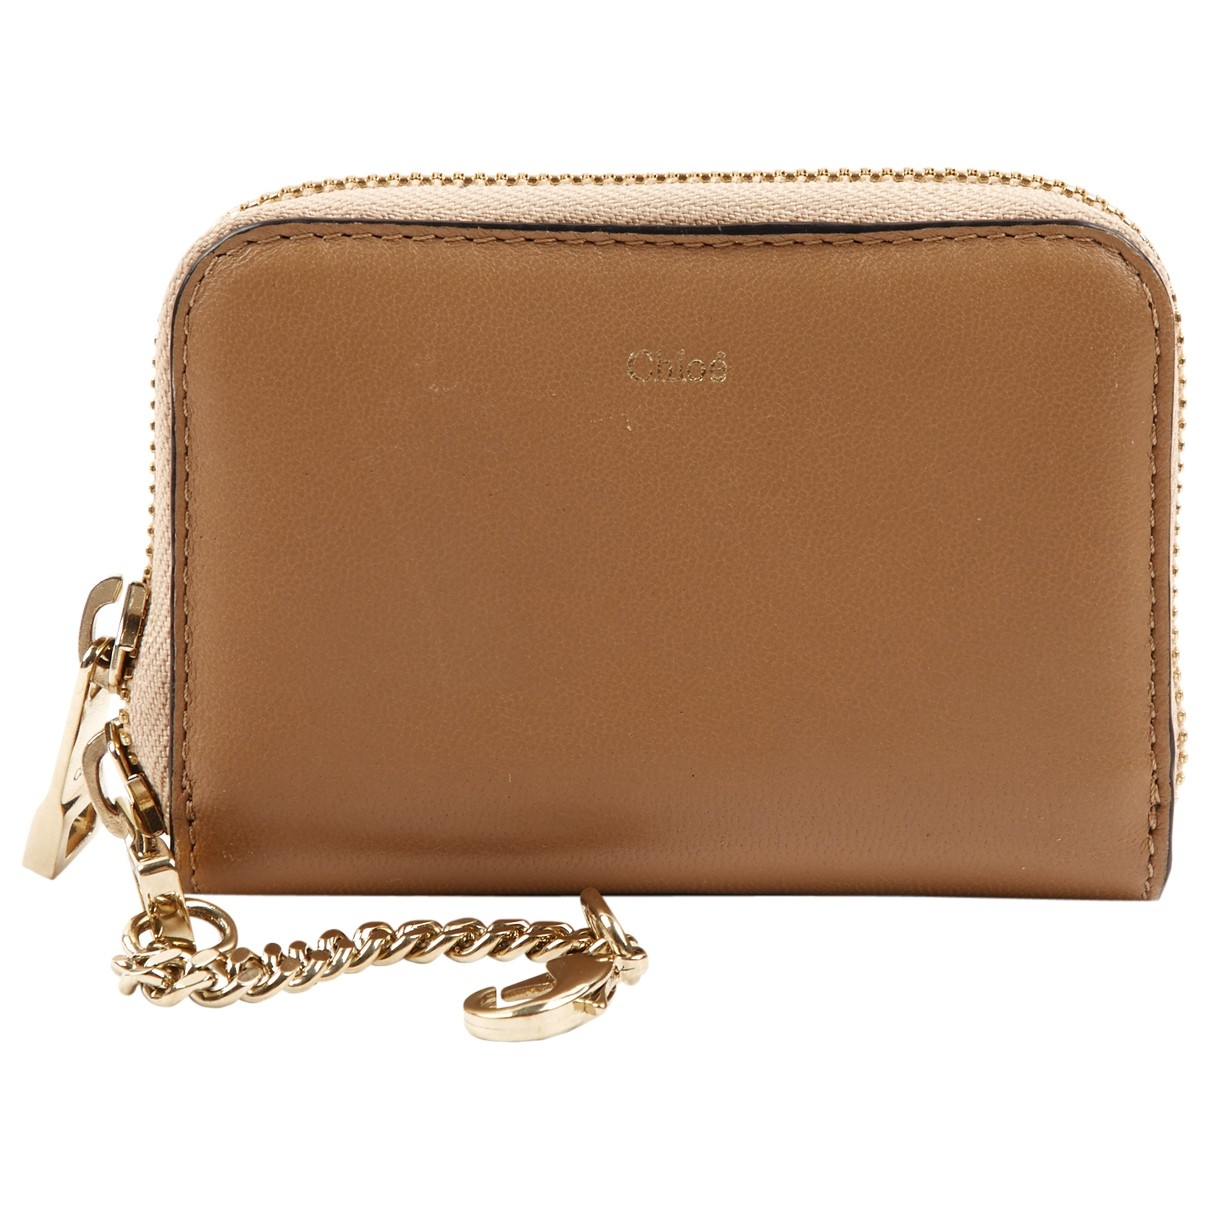 Chloé \N Gold Leather wallet for Women \N